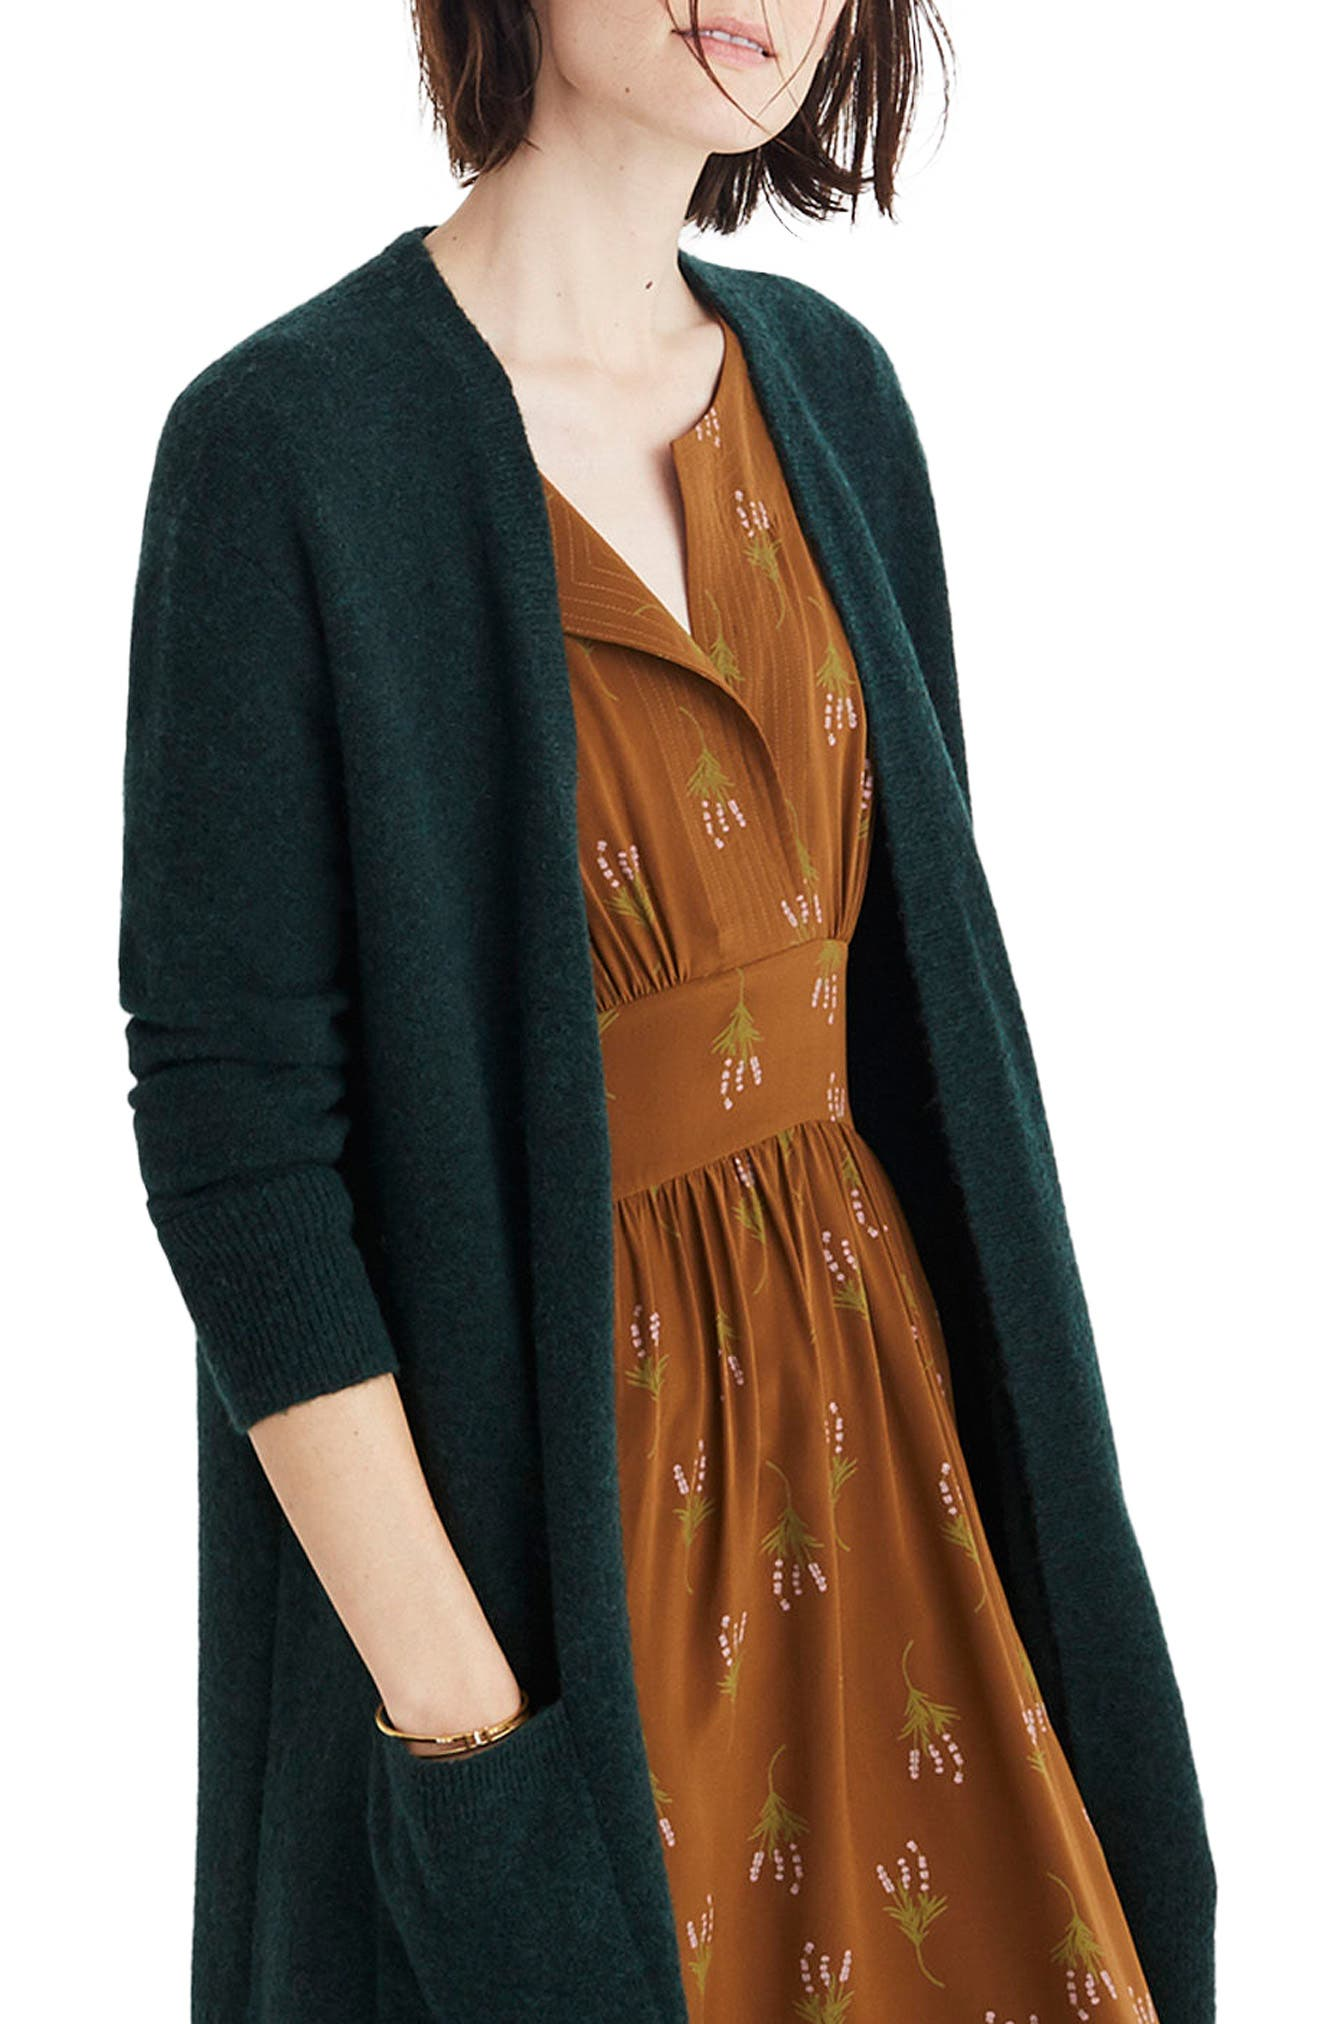 Madewell Kent Cardigan Sweater | Nordstrom